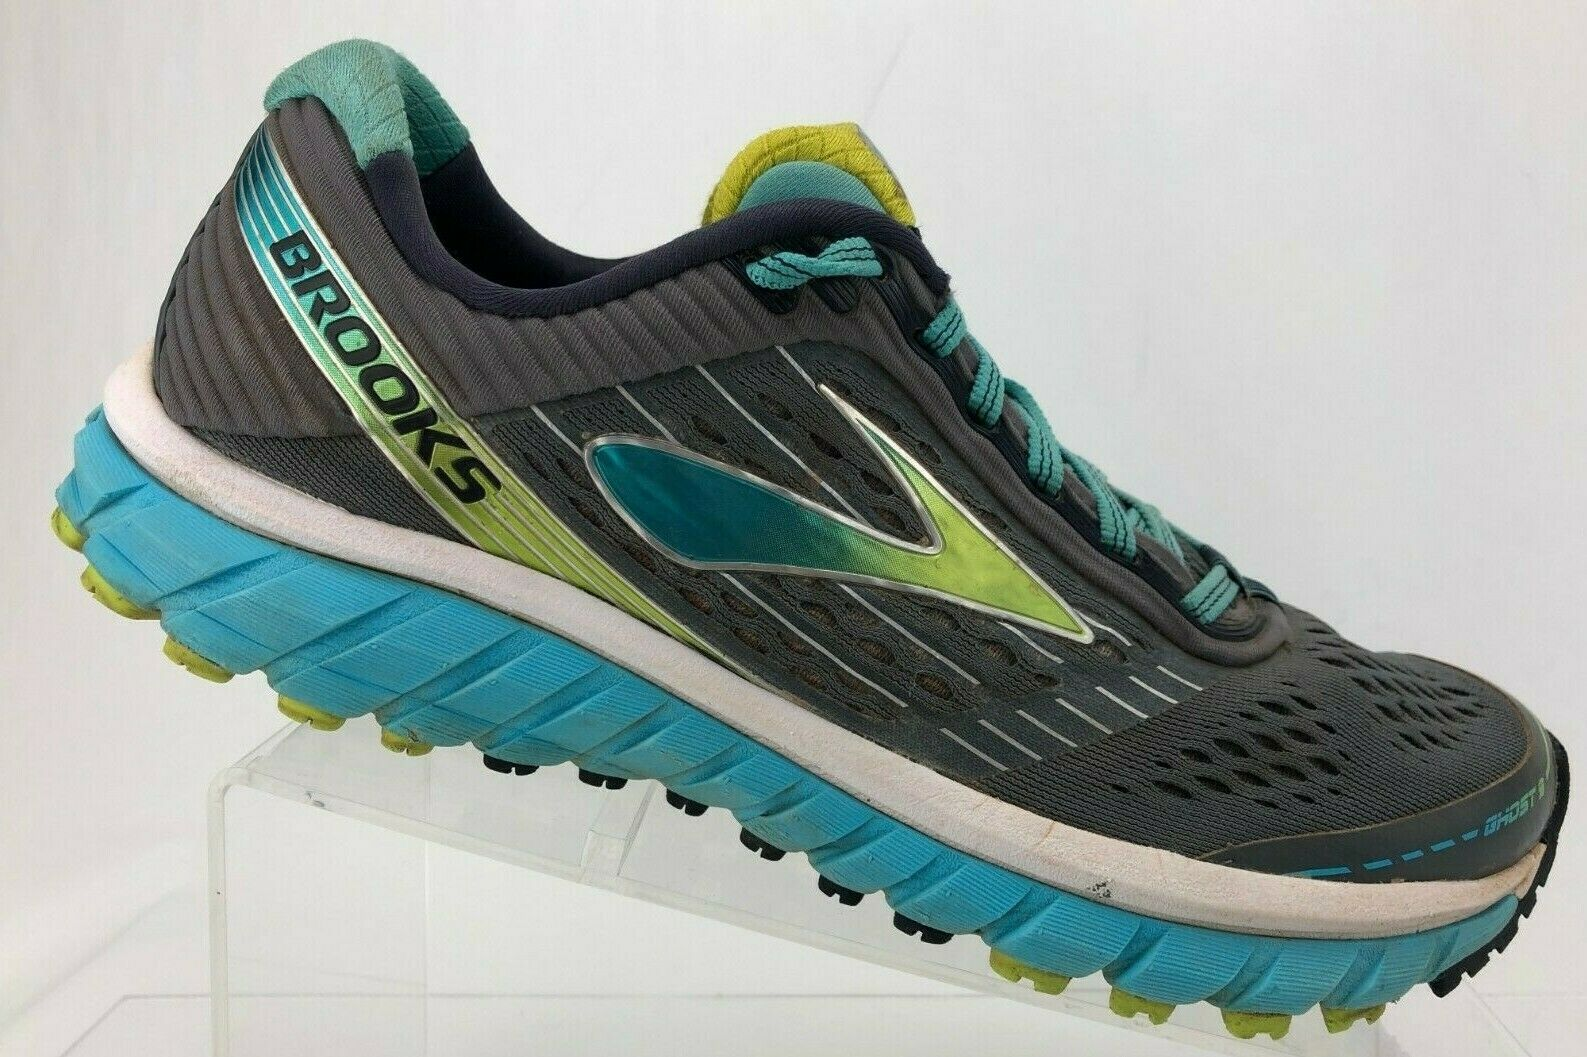 Brooks Ghost 9 Running shoes shoes shoes Grey bluee Training Athletic Sneakers Womens 9.5 B c21d50